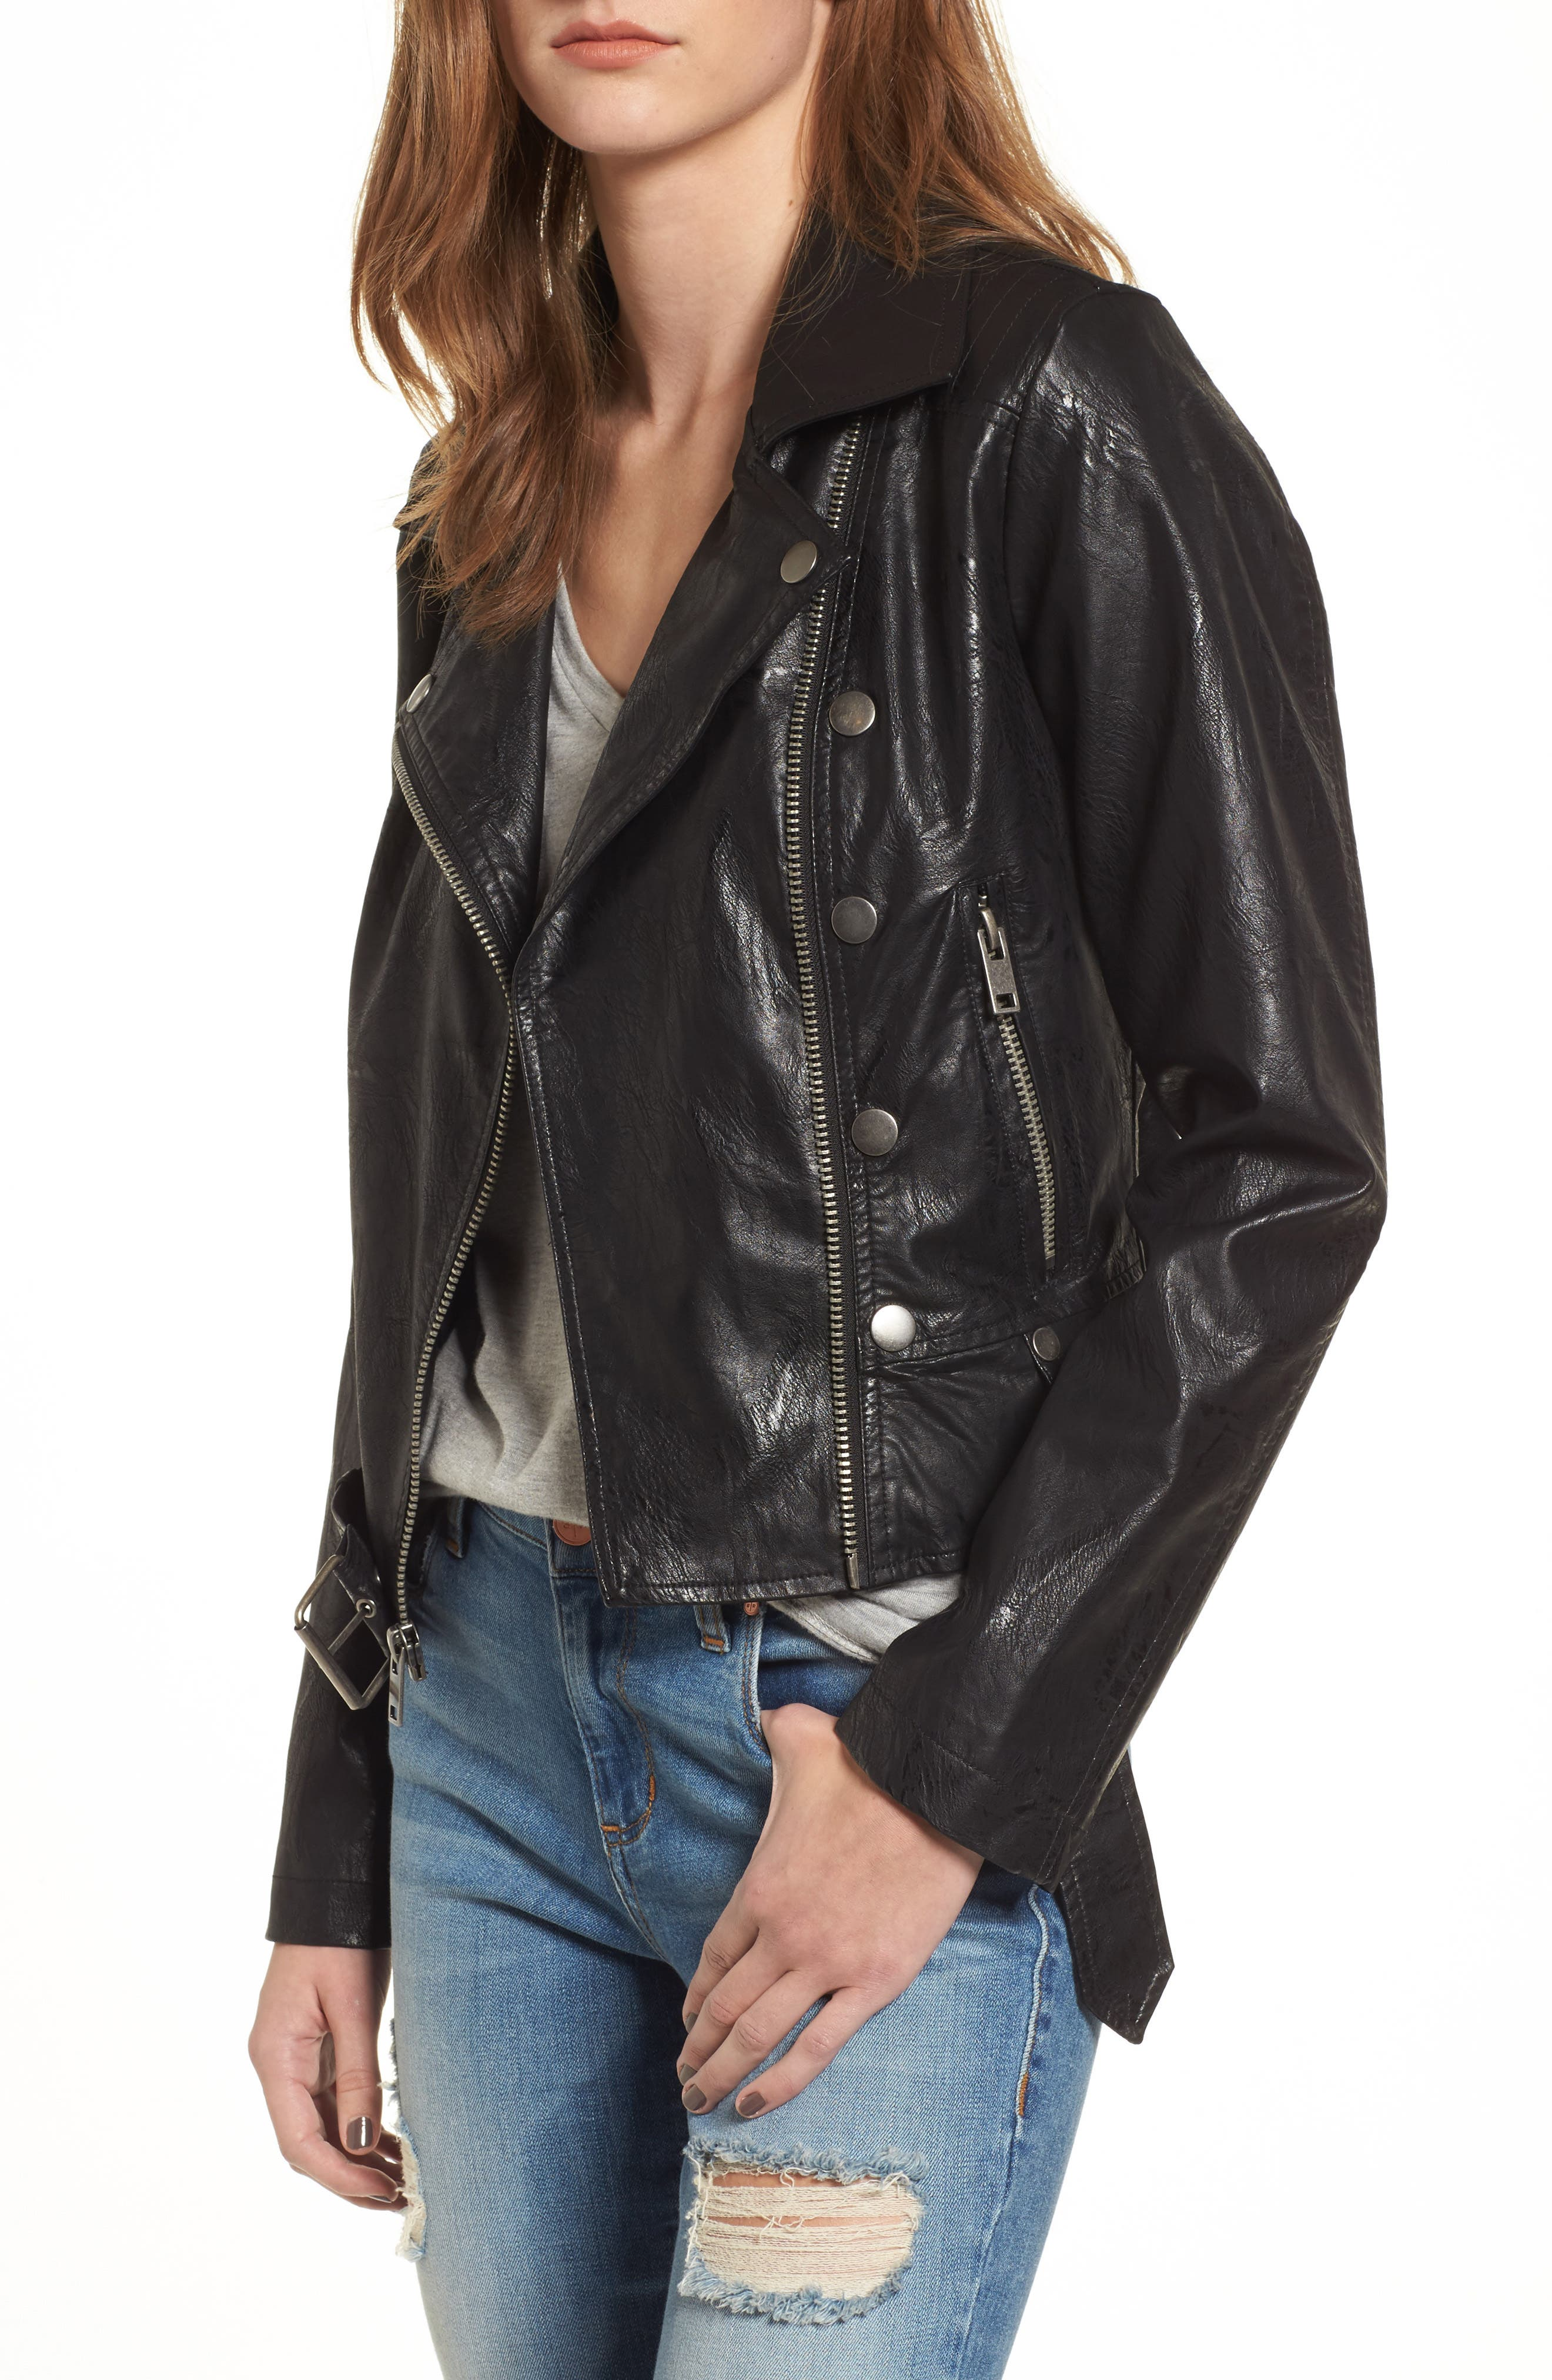 Maralyn & Me Textured Faux Leather Jacket